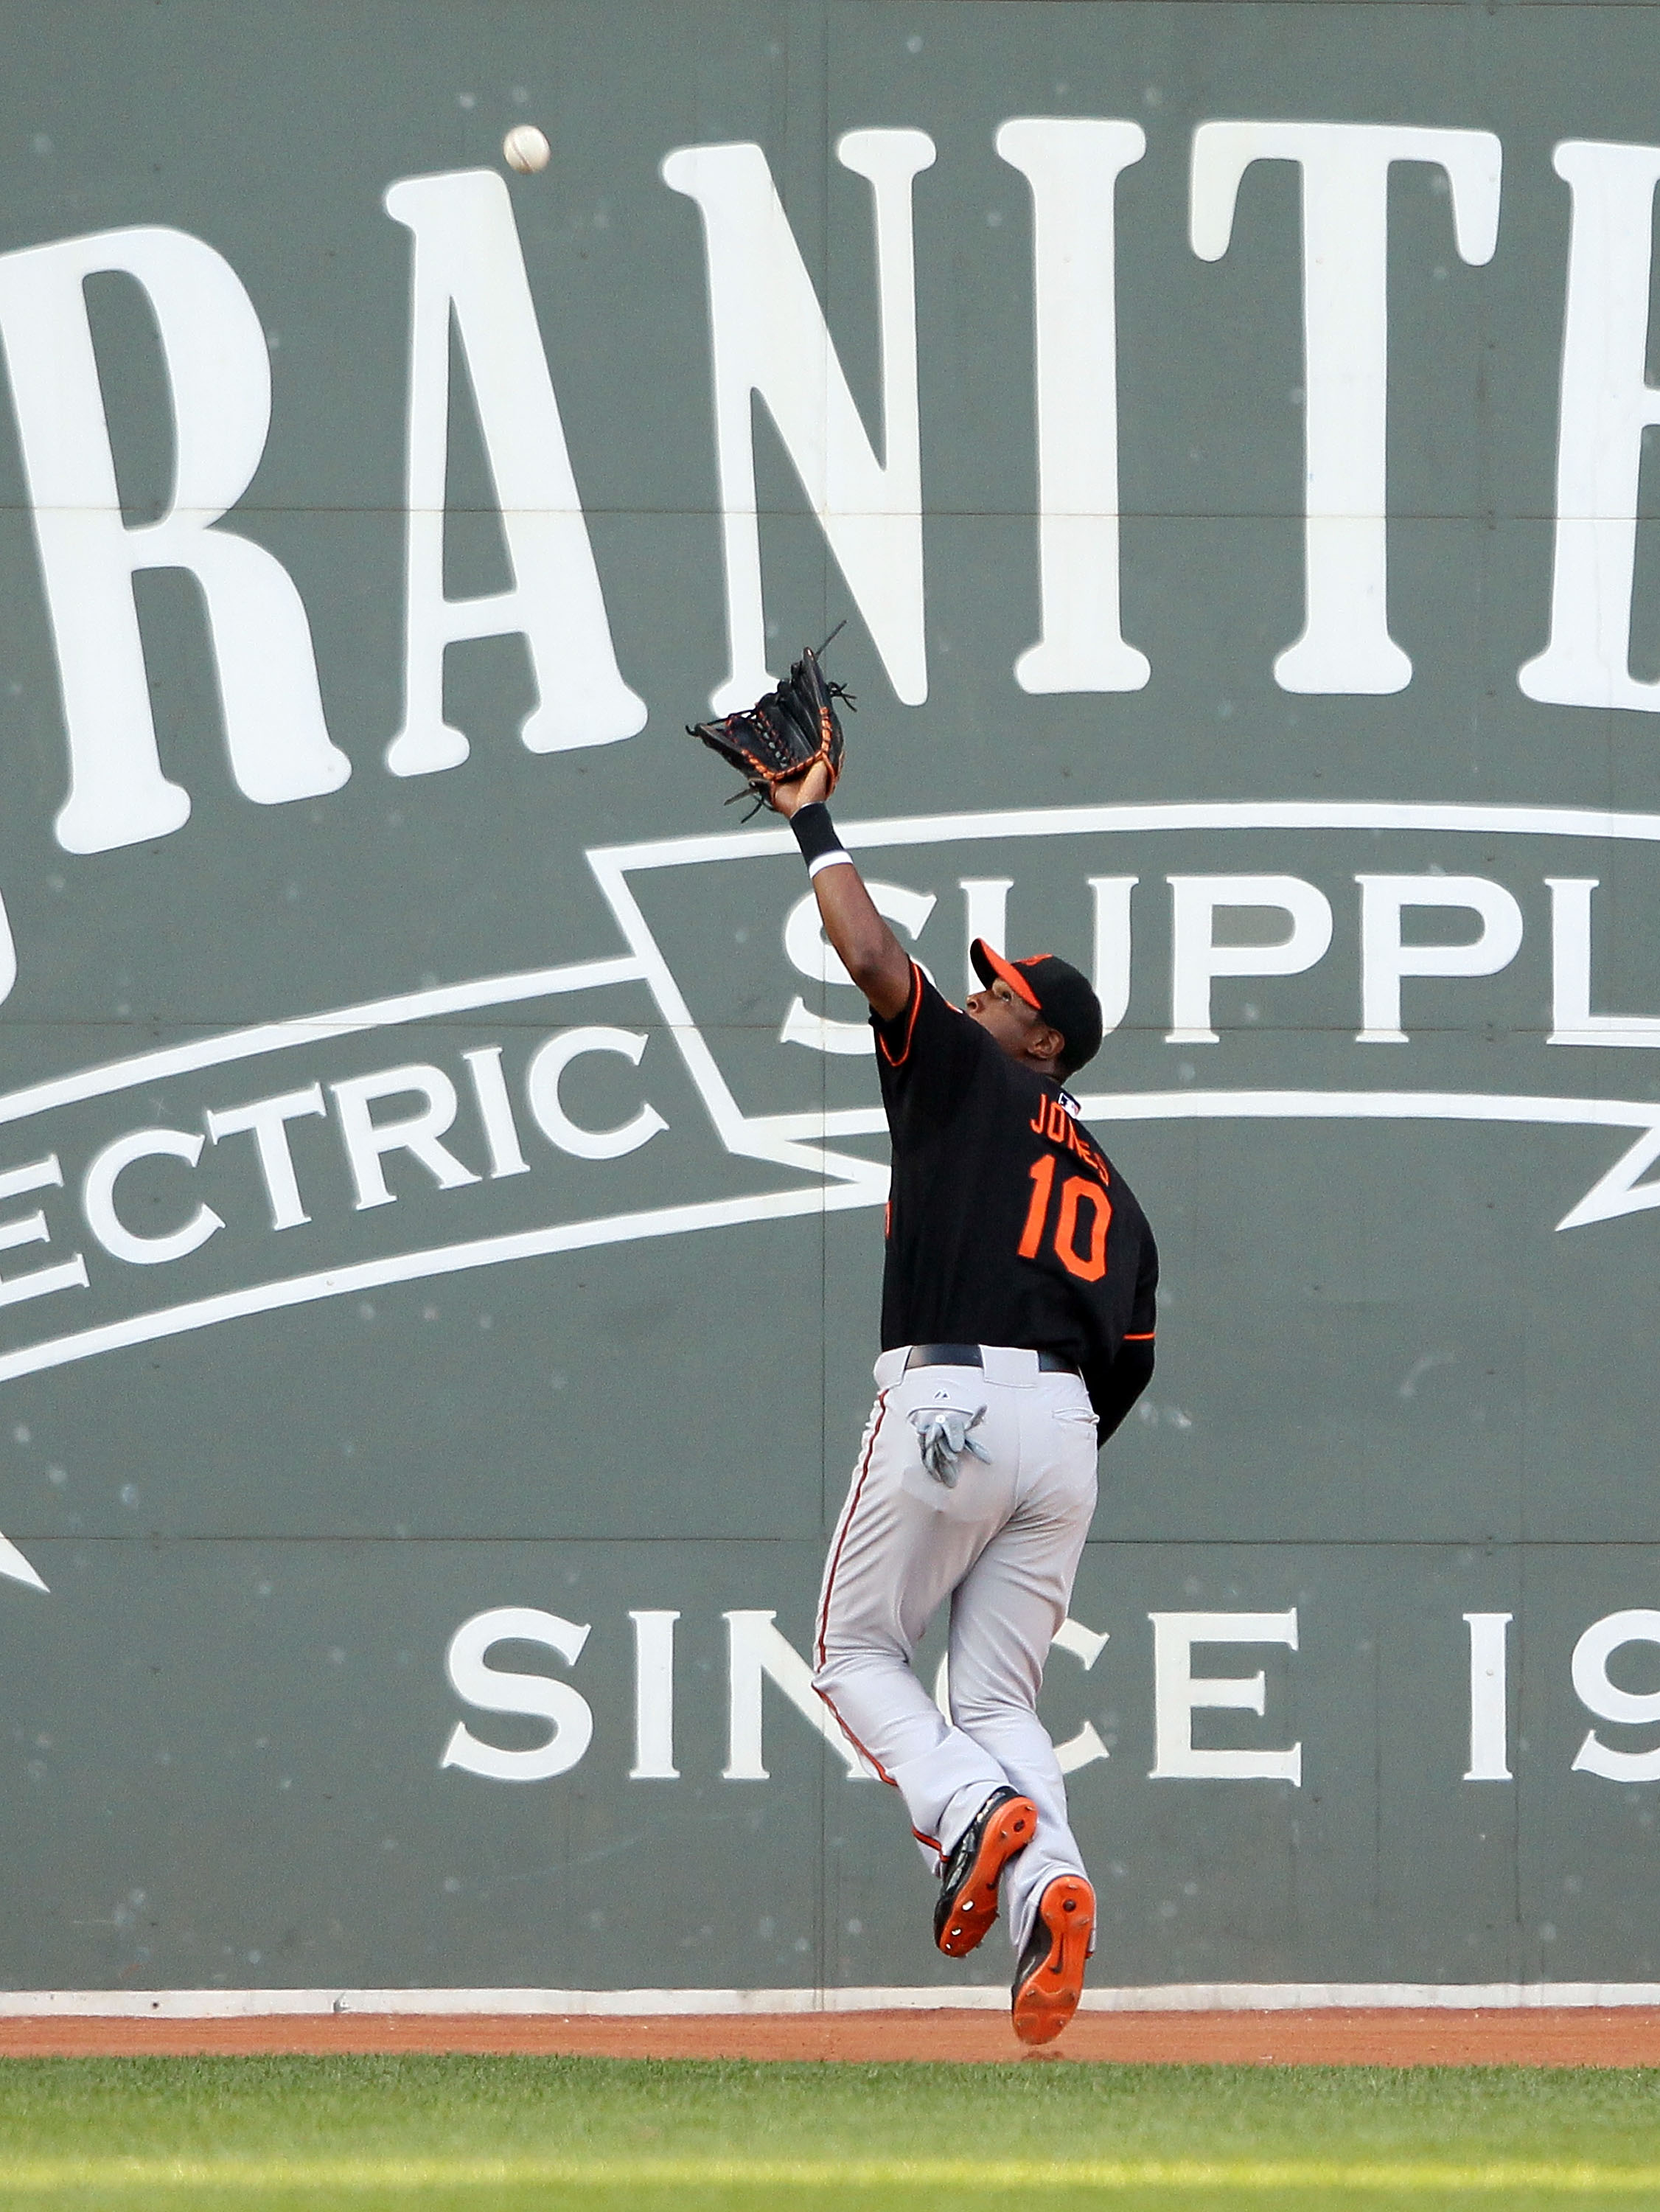 BOSTON - JULY 02:  Adam Jones #10 of the Baltimore Orioles makes the catch for the out on a hit by Eric Patterson of the Boston Red Sox on July 2, 2010 at Fenway Park in Boston, Massachusetts.  (Photo by Elsa/Getty Images)